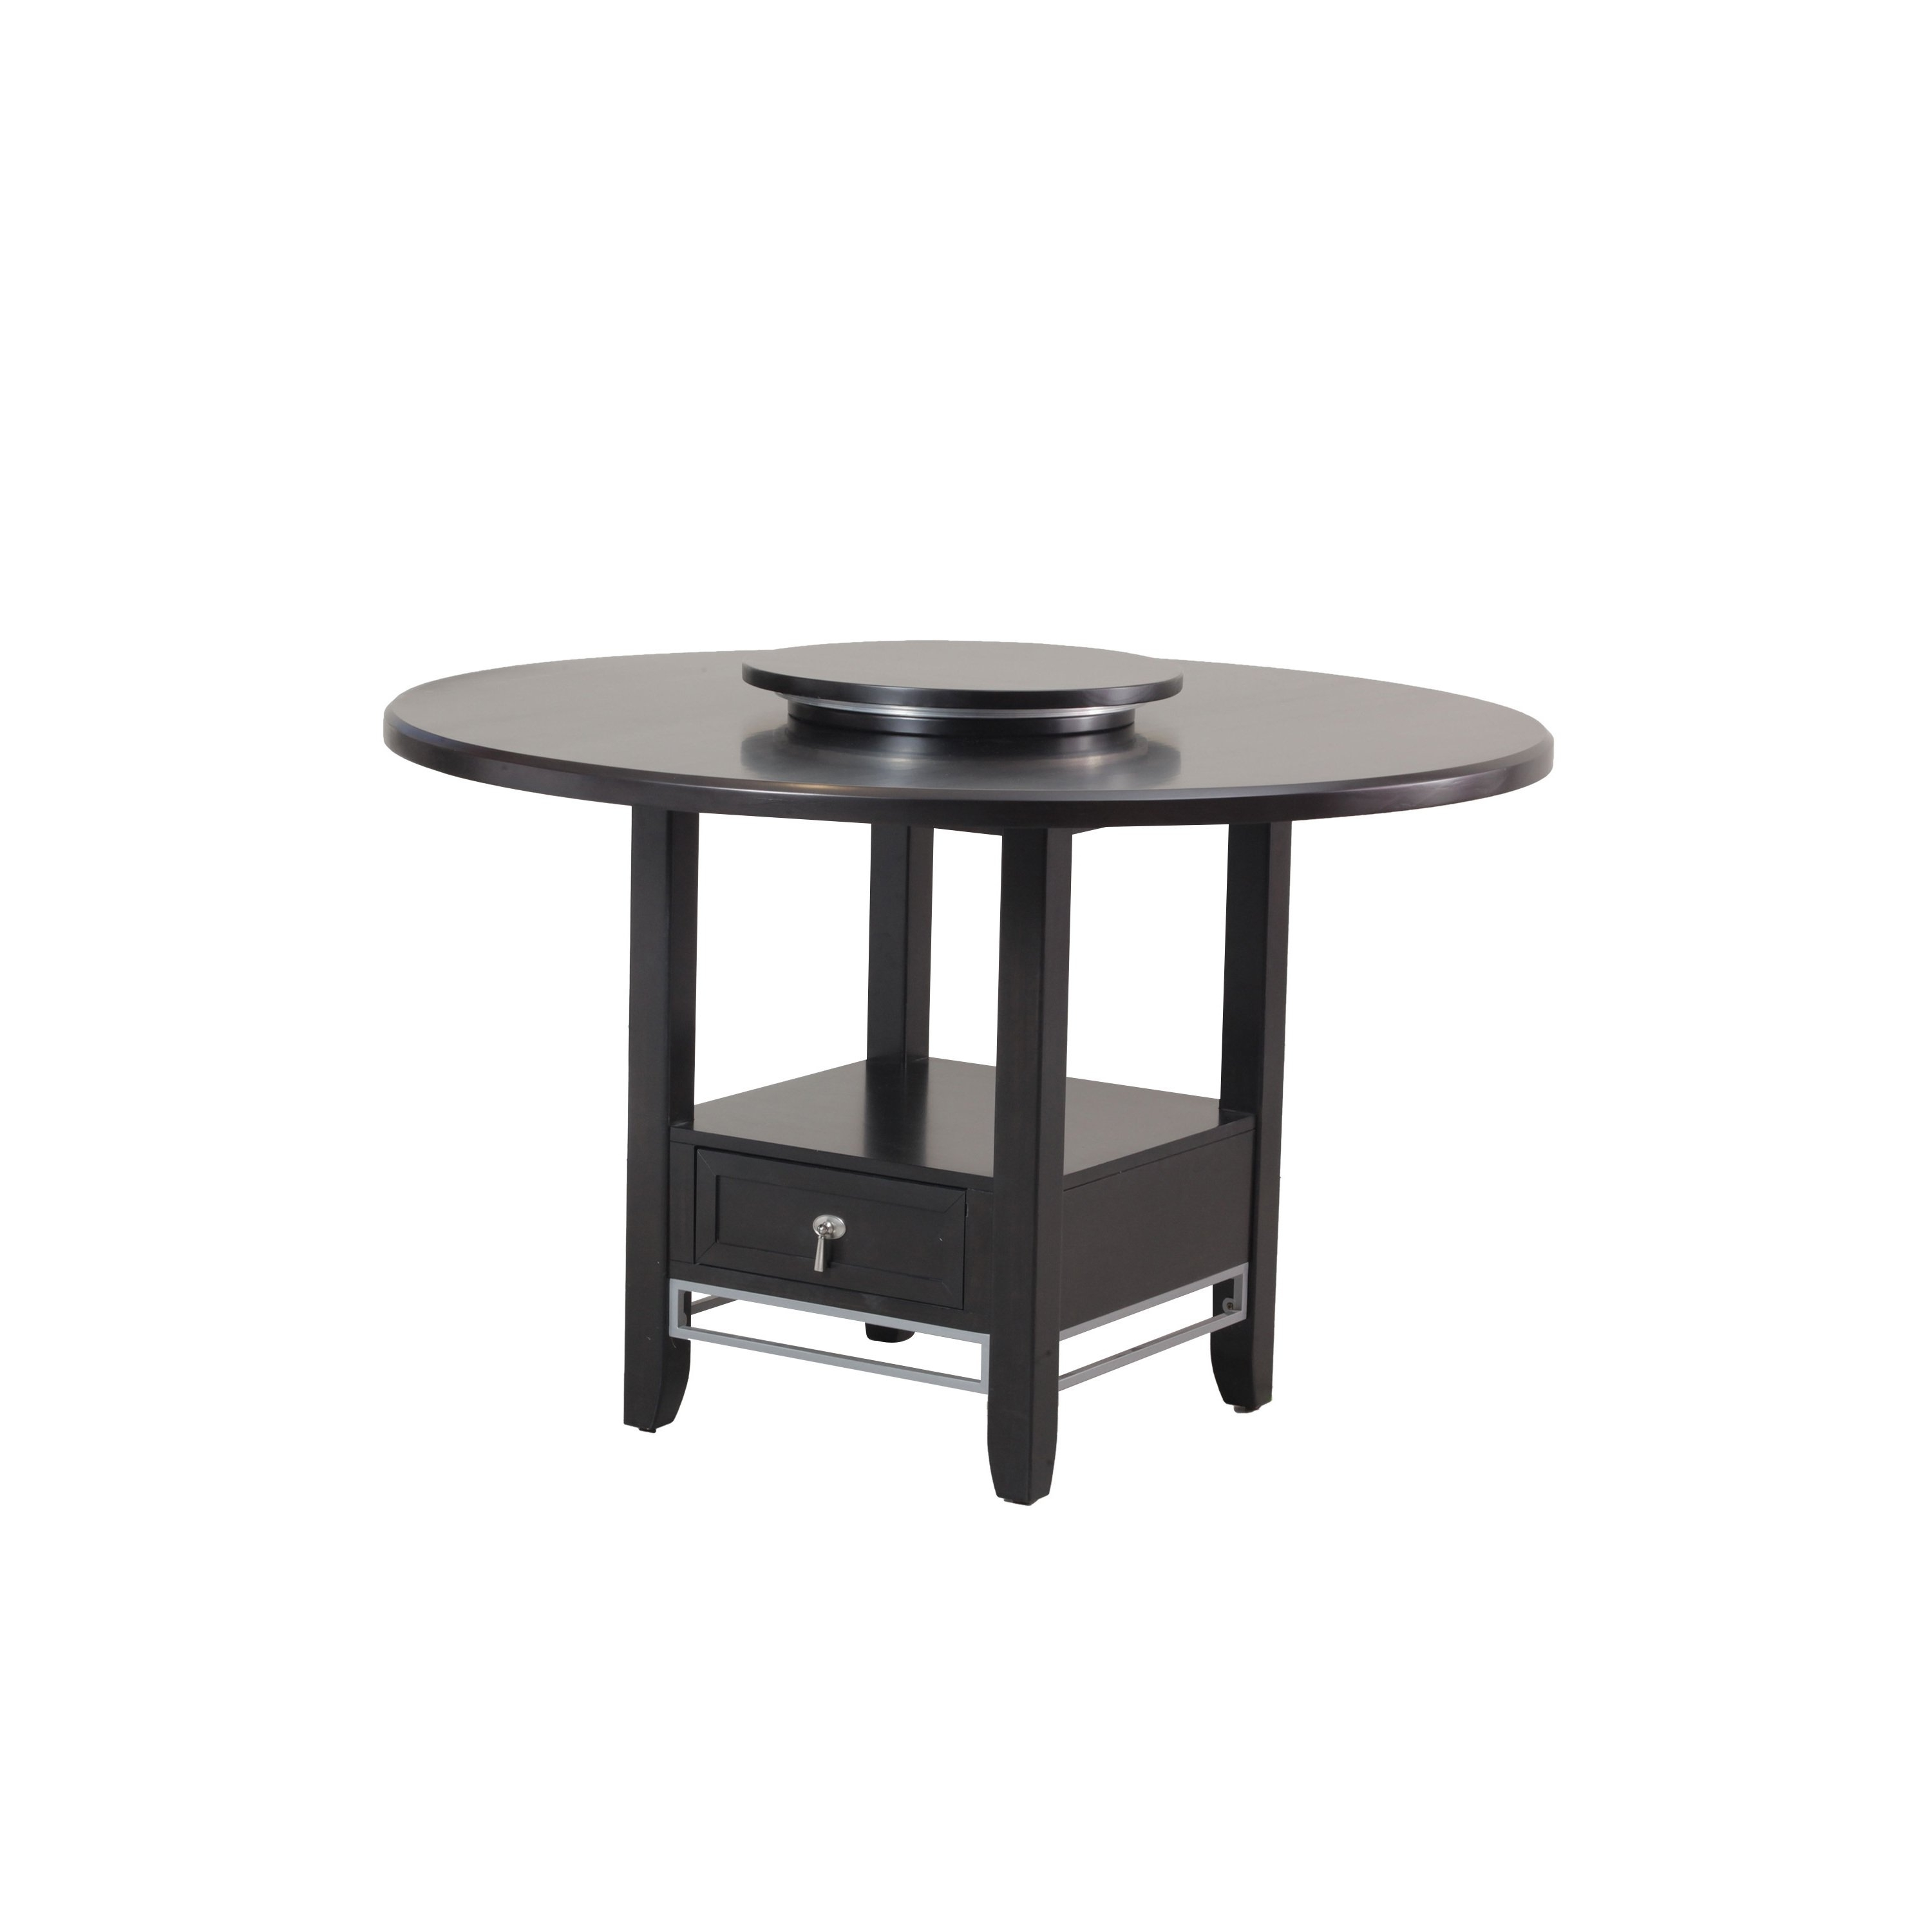 Caden Rectangle Dining Tables For Well Liked Shop Caden Dining Table – Cappuccino – Free Shipping Today (View 6 of 25)